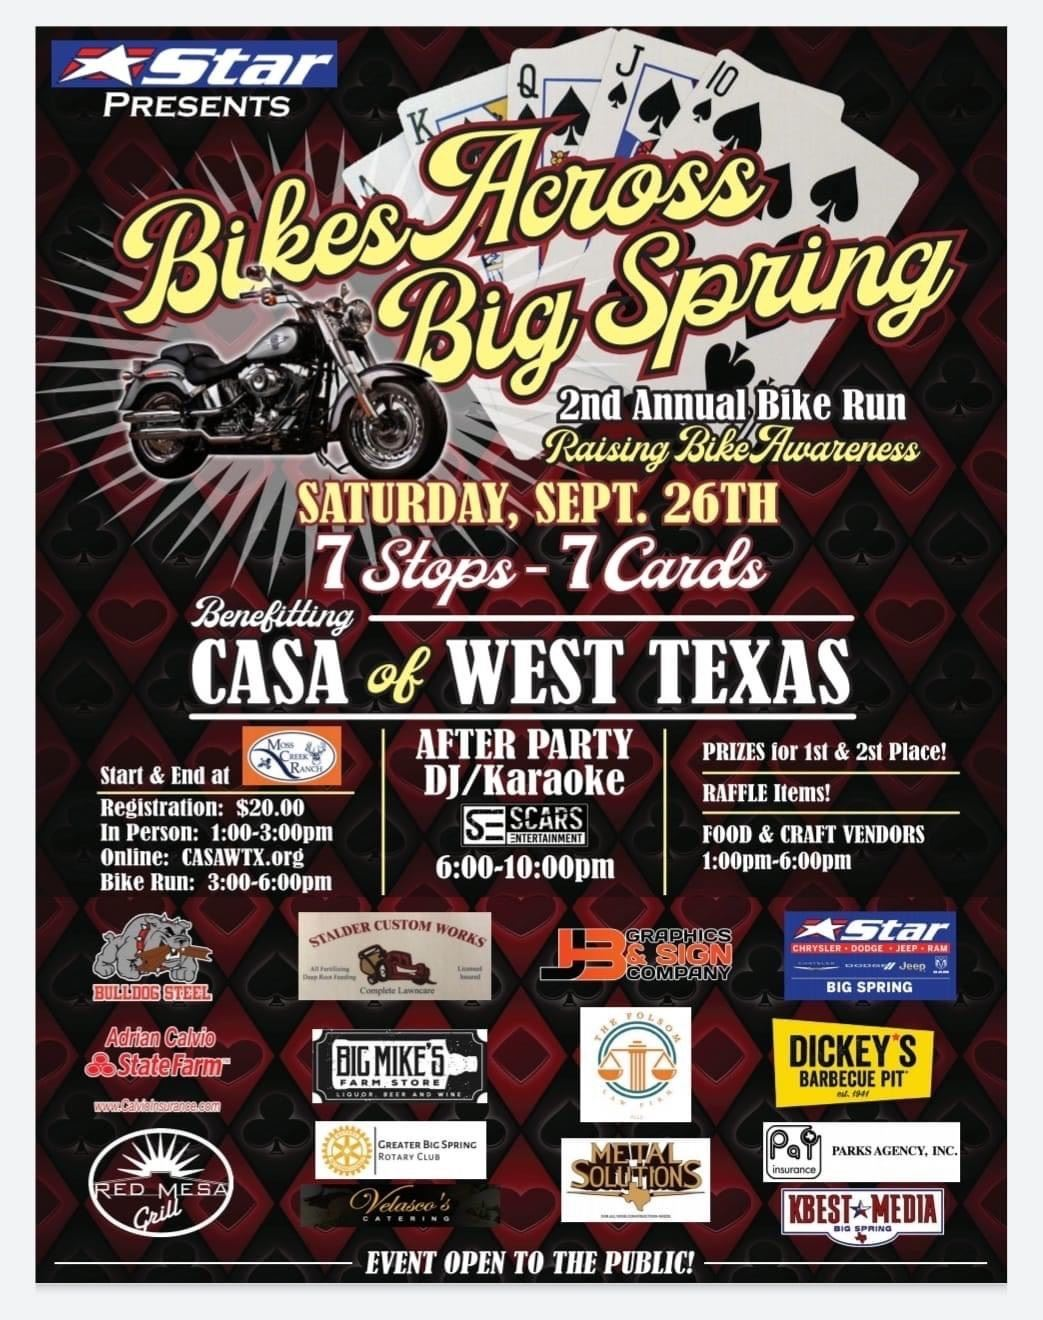 2nd Annual Bikes Across Big Spring